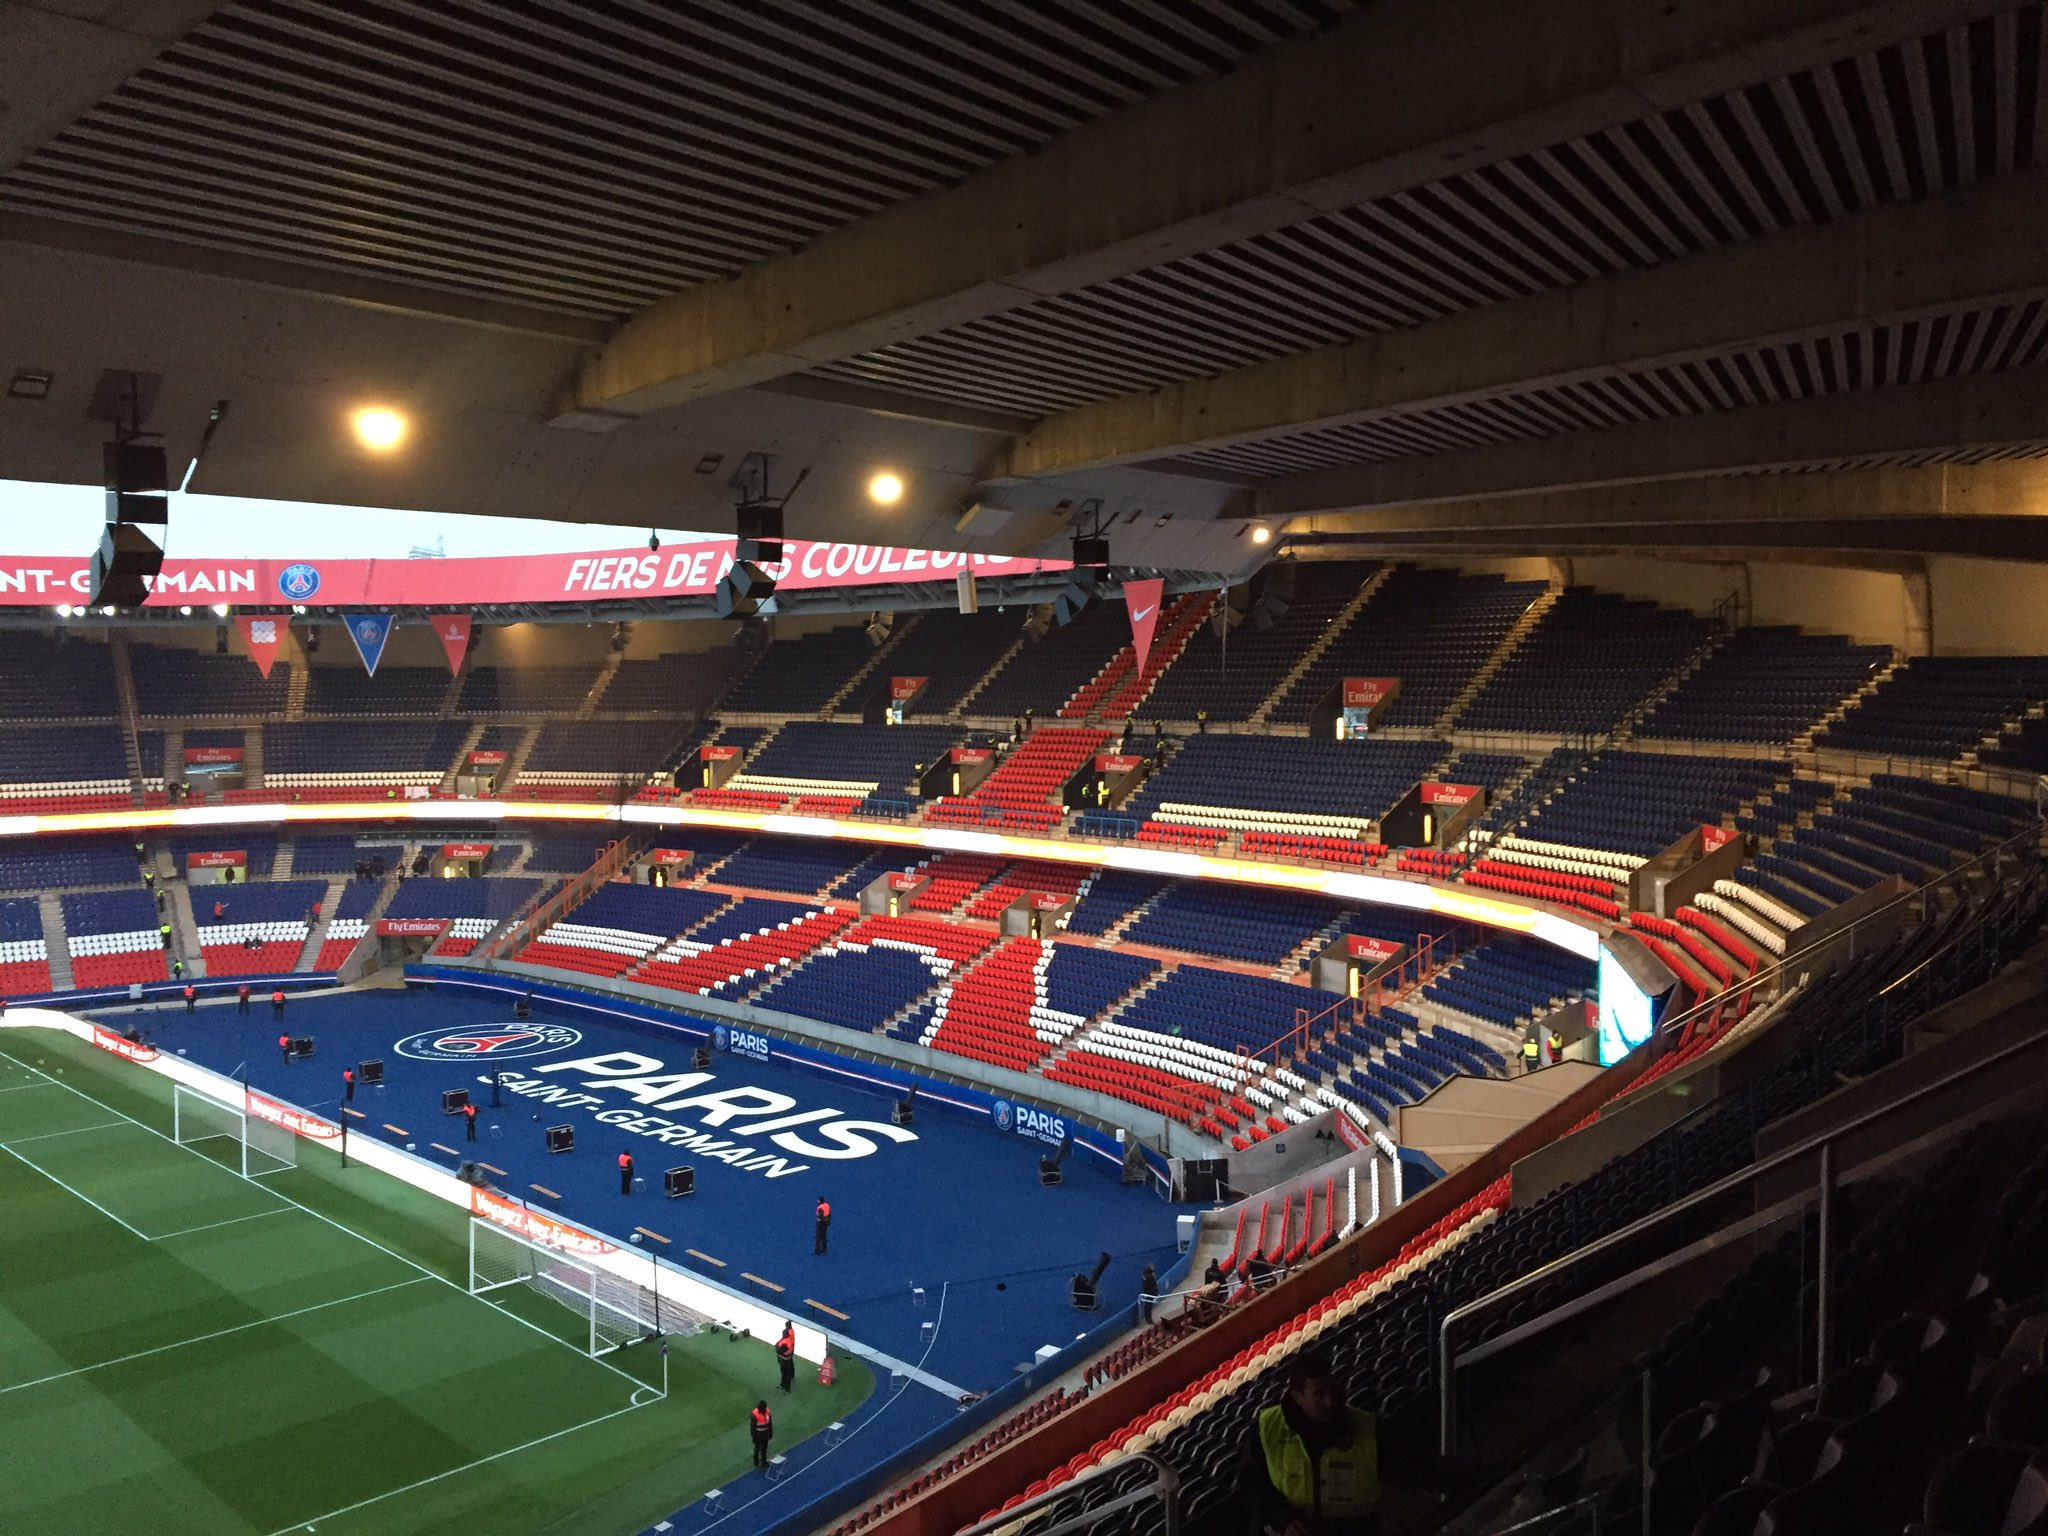 parc des princes ... 03 20 2 4ed18df Champions: City, Real, Tottenham   e Besiktas...